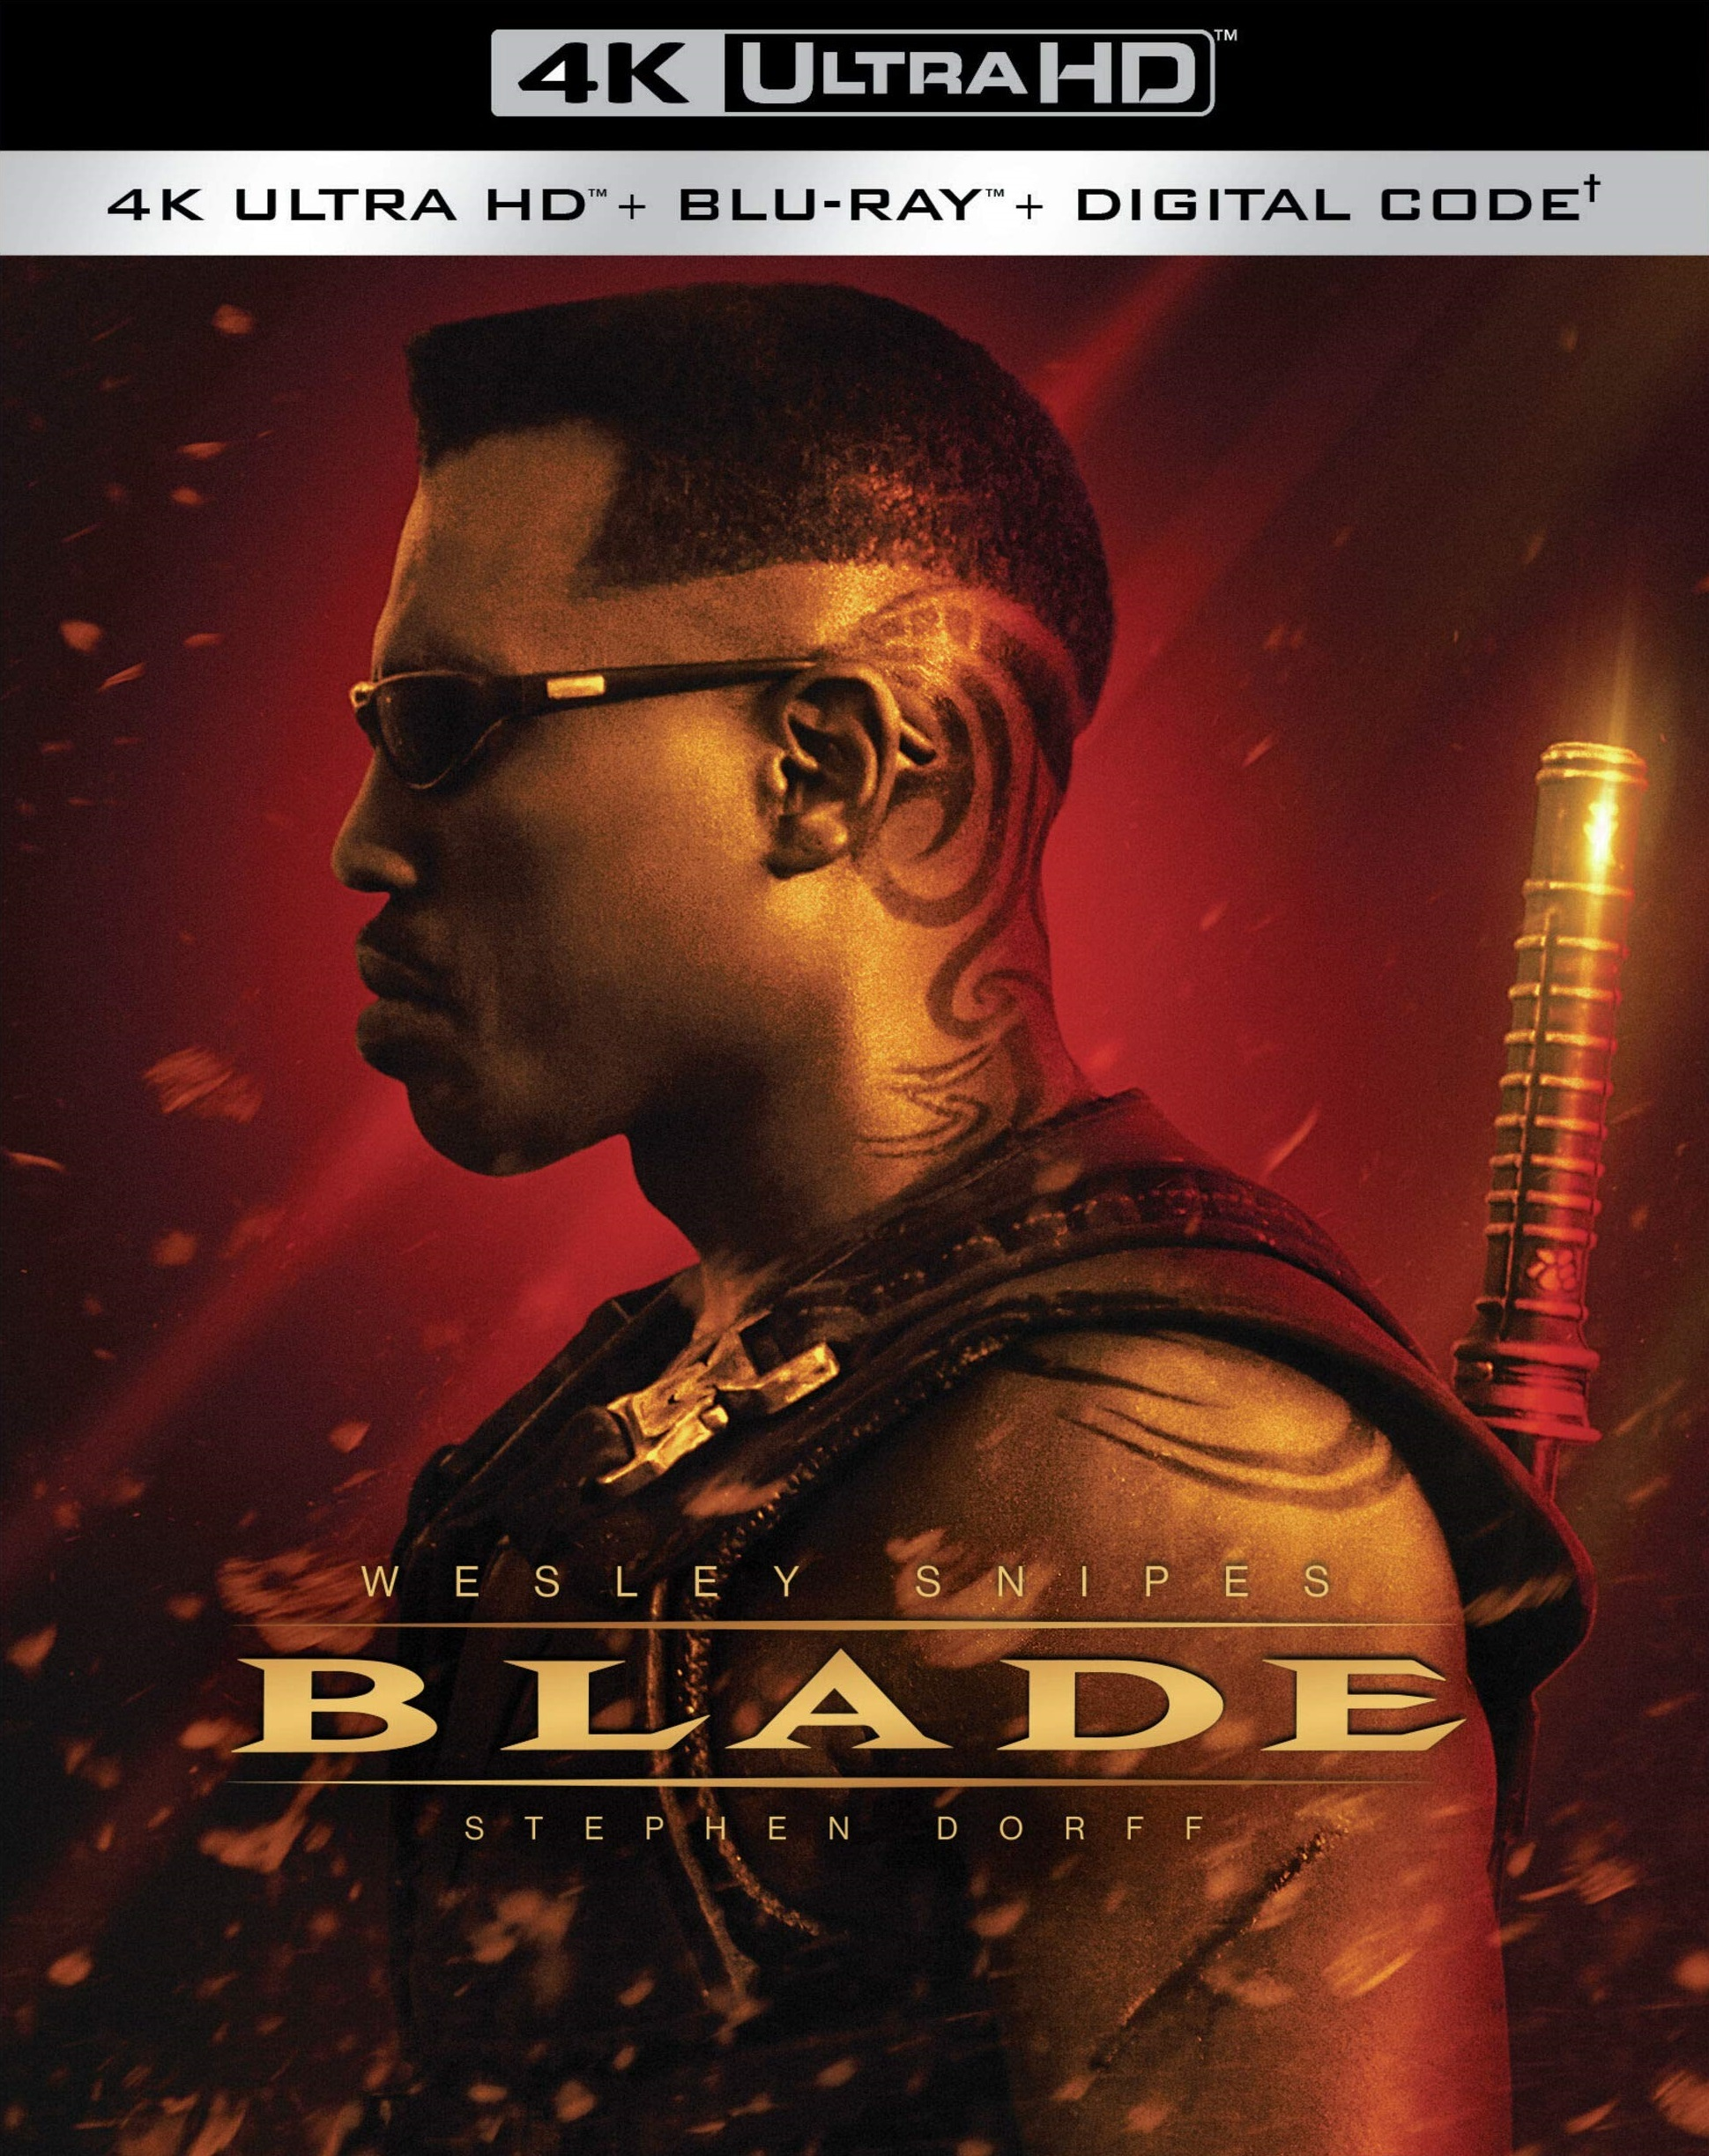 blade 4k uhd bluray front cover